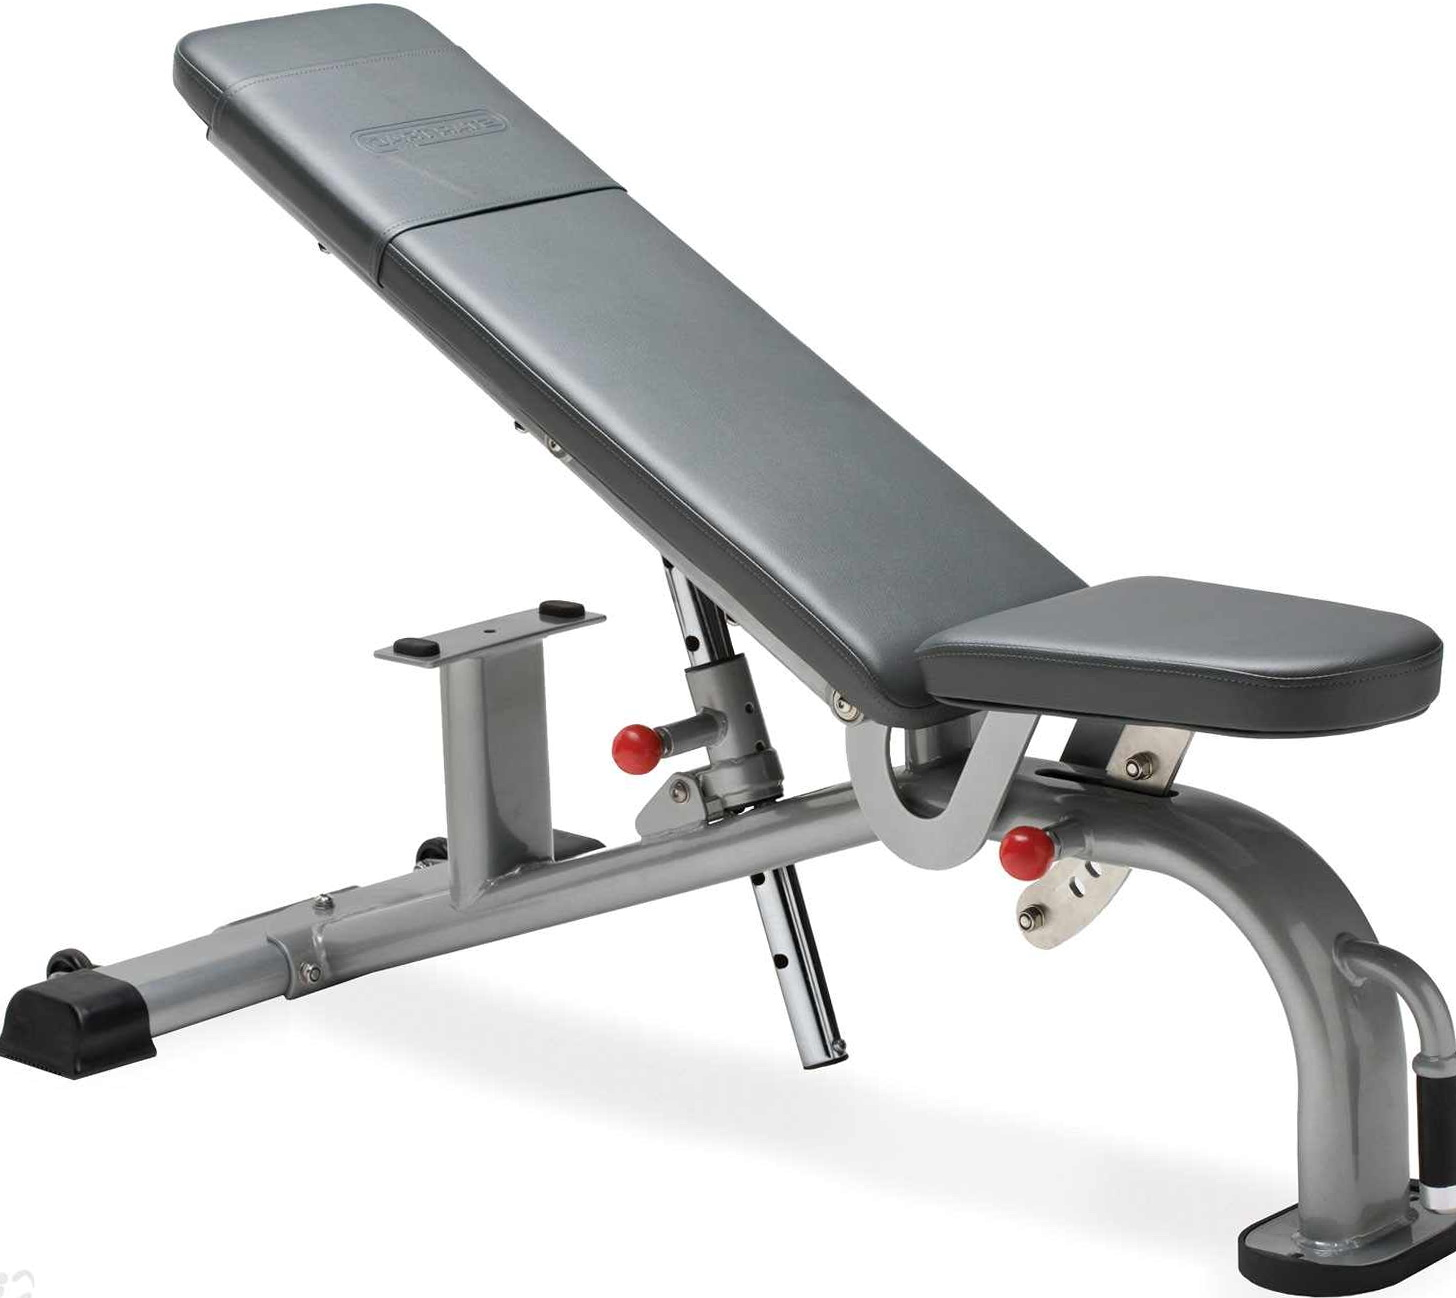 Cheap Weight Benches Amazon Home Design Ideas